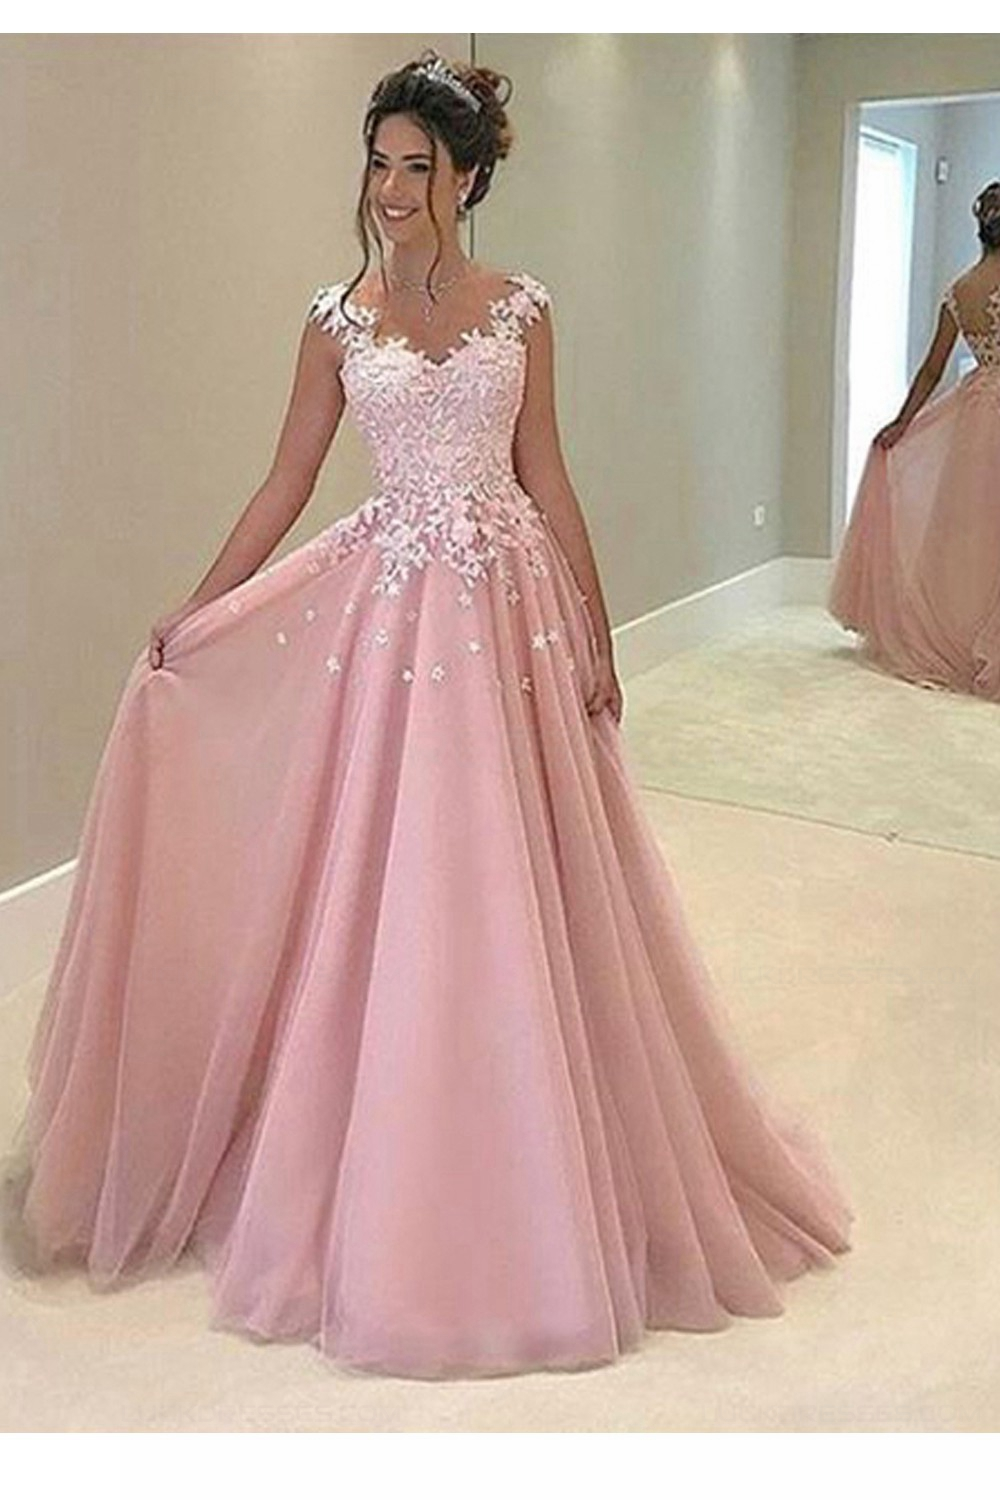 A-Line Long Pink Lace Prom Dresses Party Evening Gowns 3020248